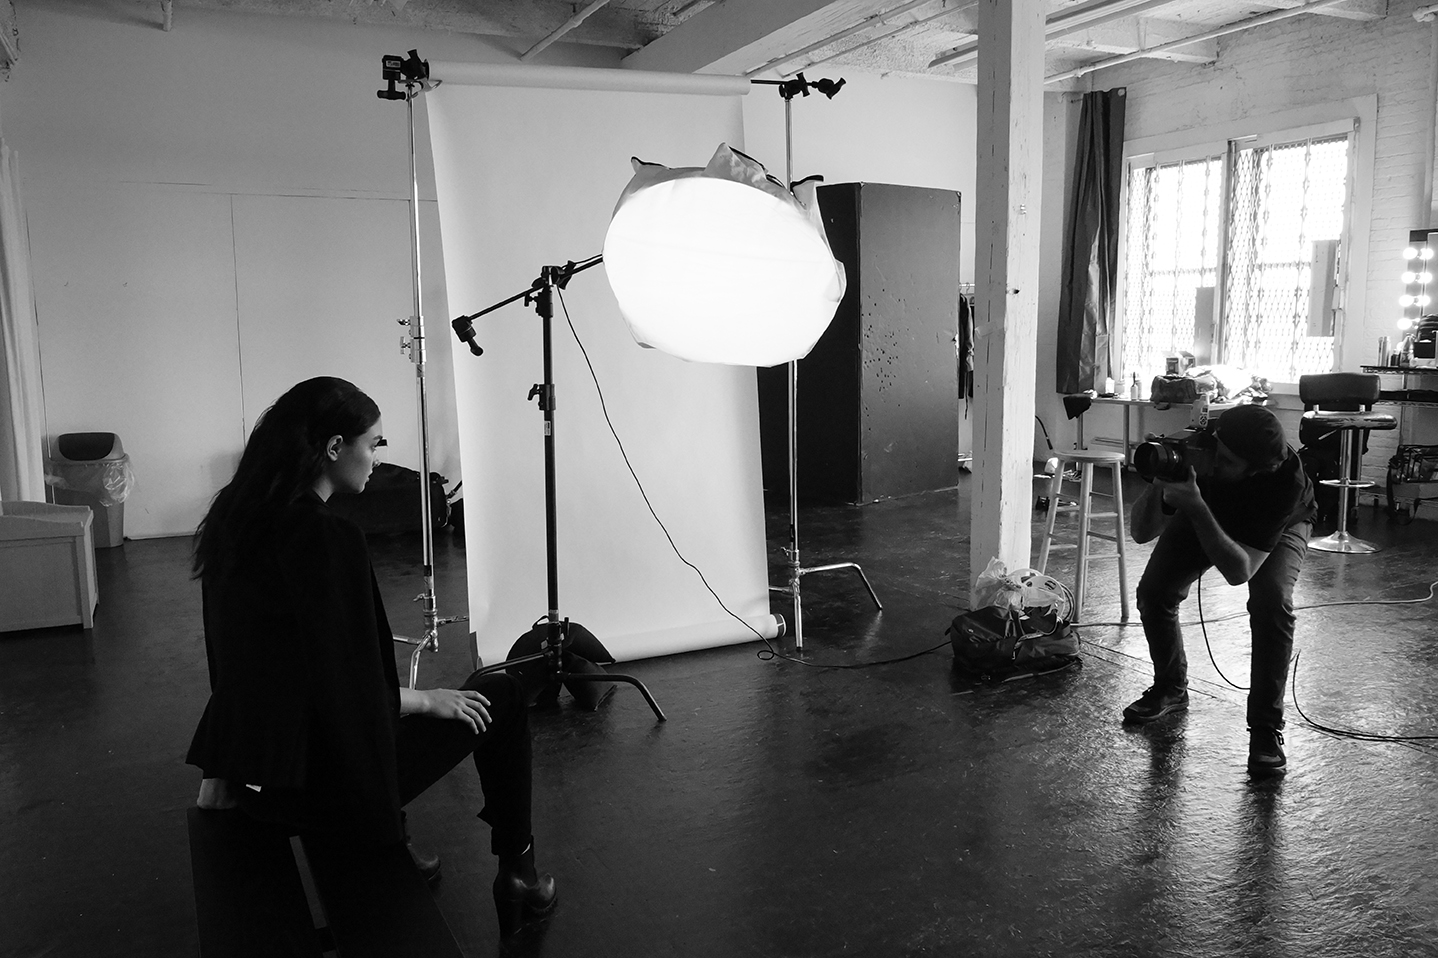 New-York-Fashion-Photographer-Grayson-Hoffman-On-Set-Behind-The-Scenes-Studio-On-Location-Black-And-White-21